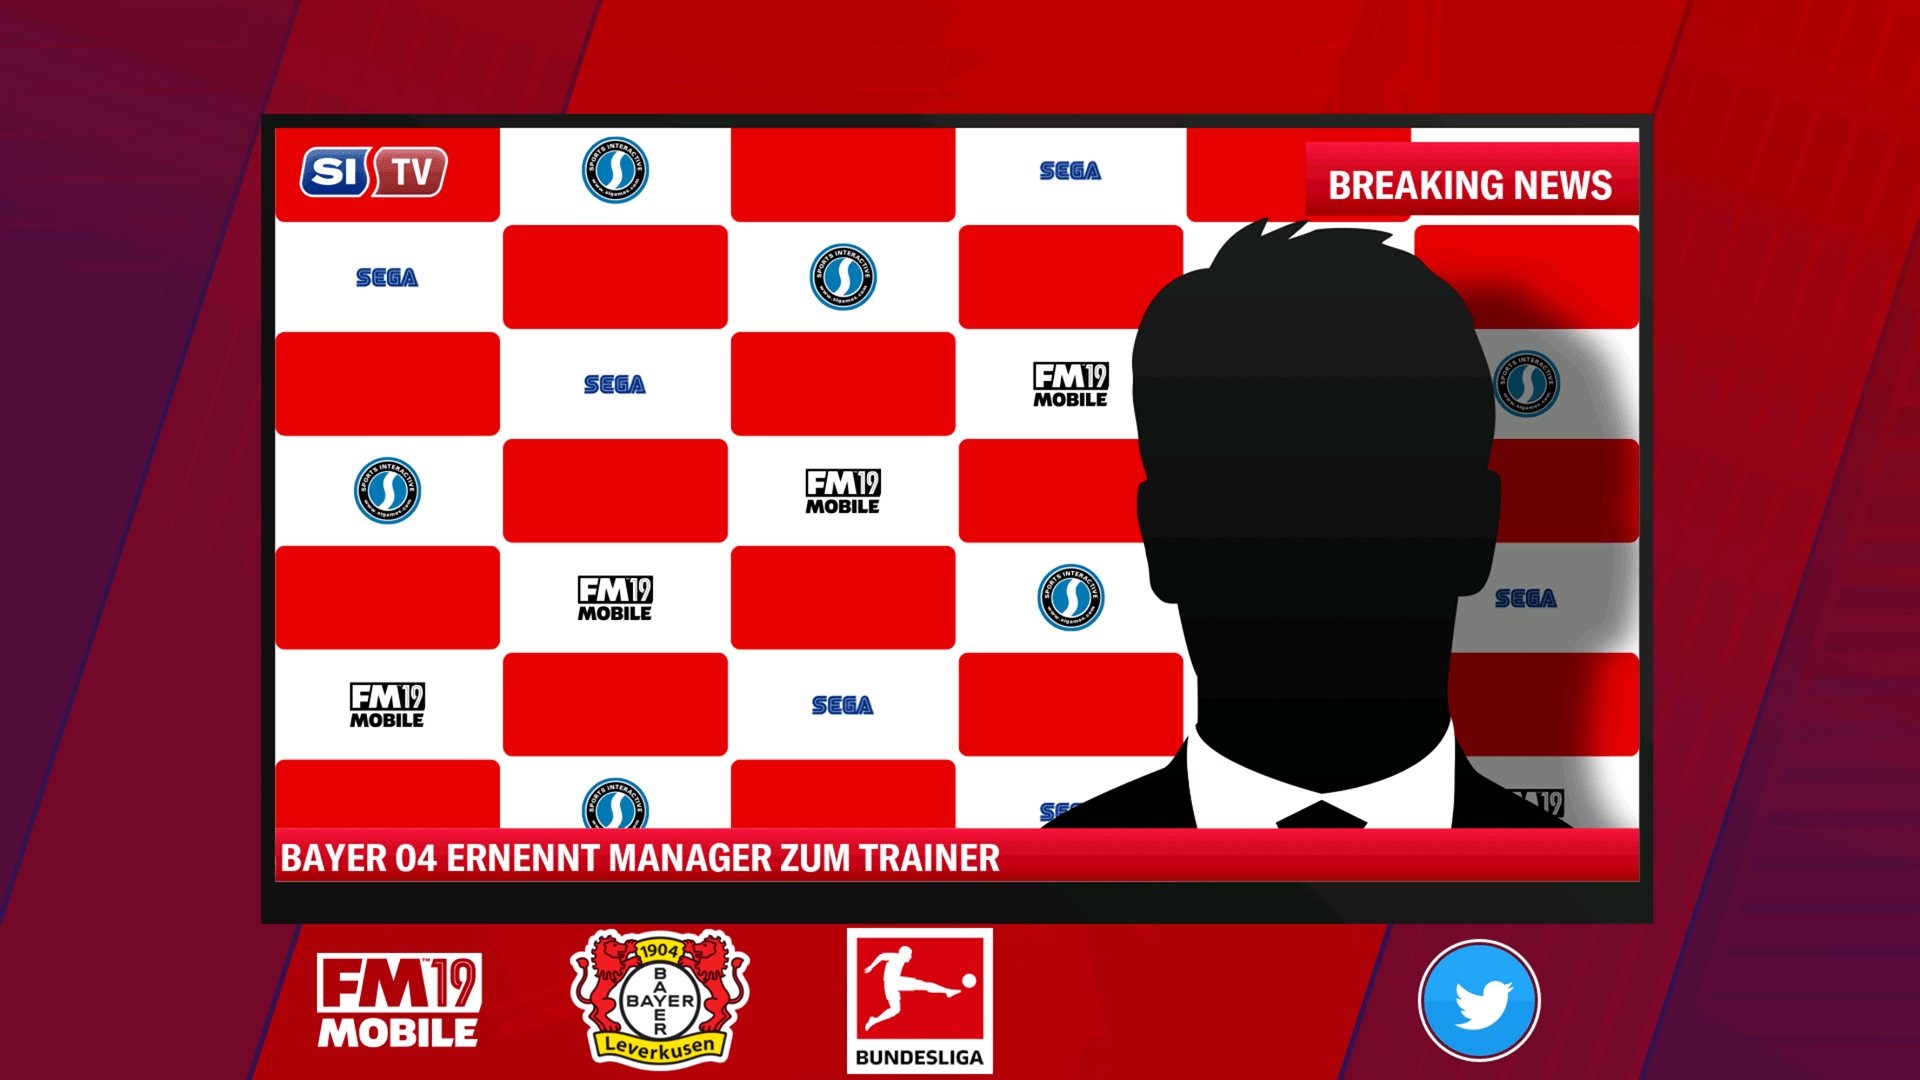 Football Manager 2019 Mobile features